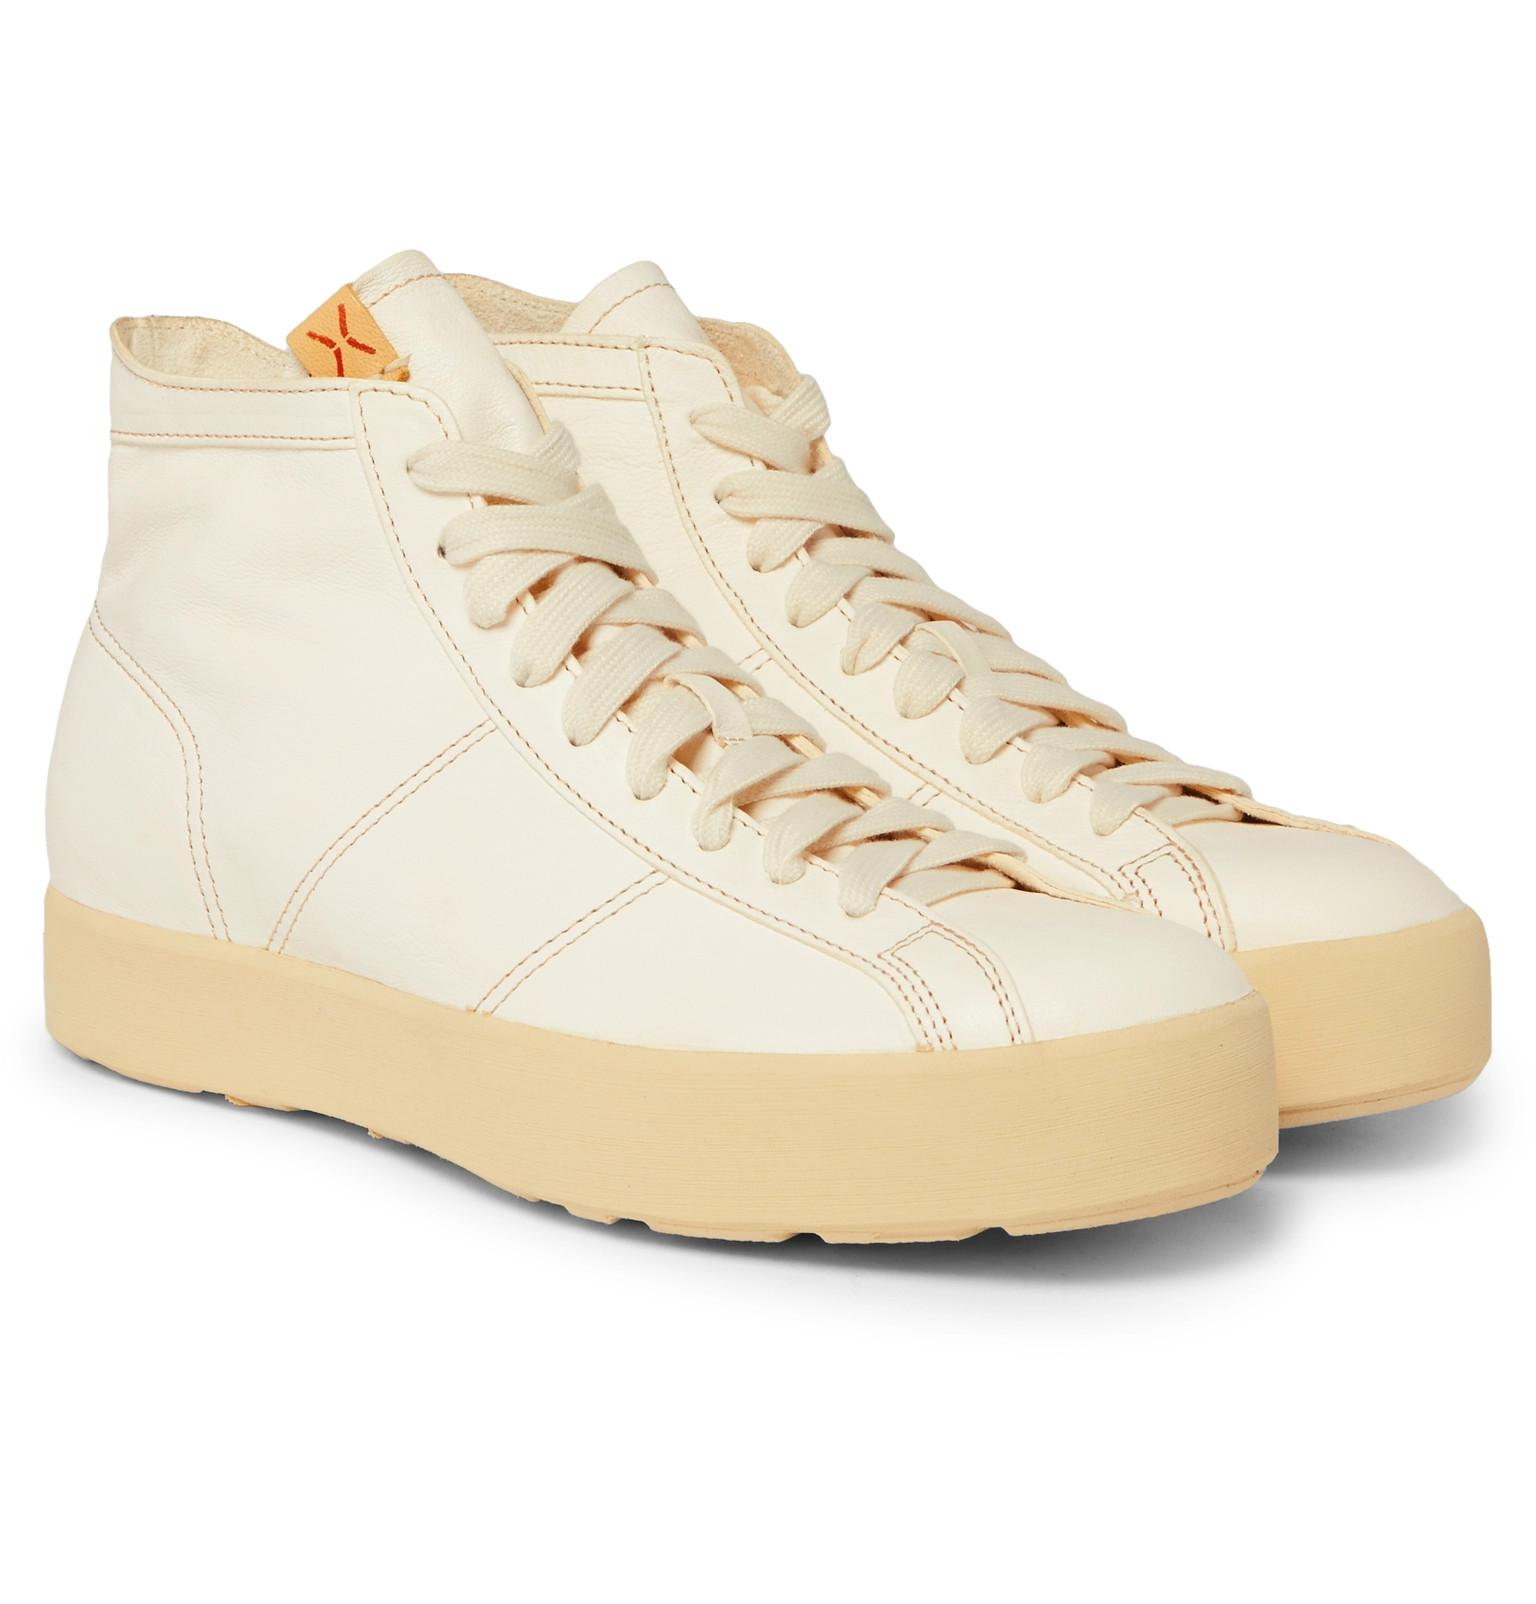 cheap 100% authentic visvim Foley Folk Leather High-Top Sneakers discount exclusive m8idU5